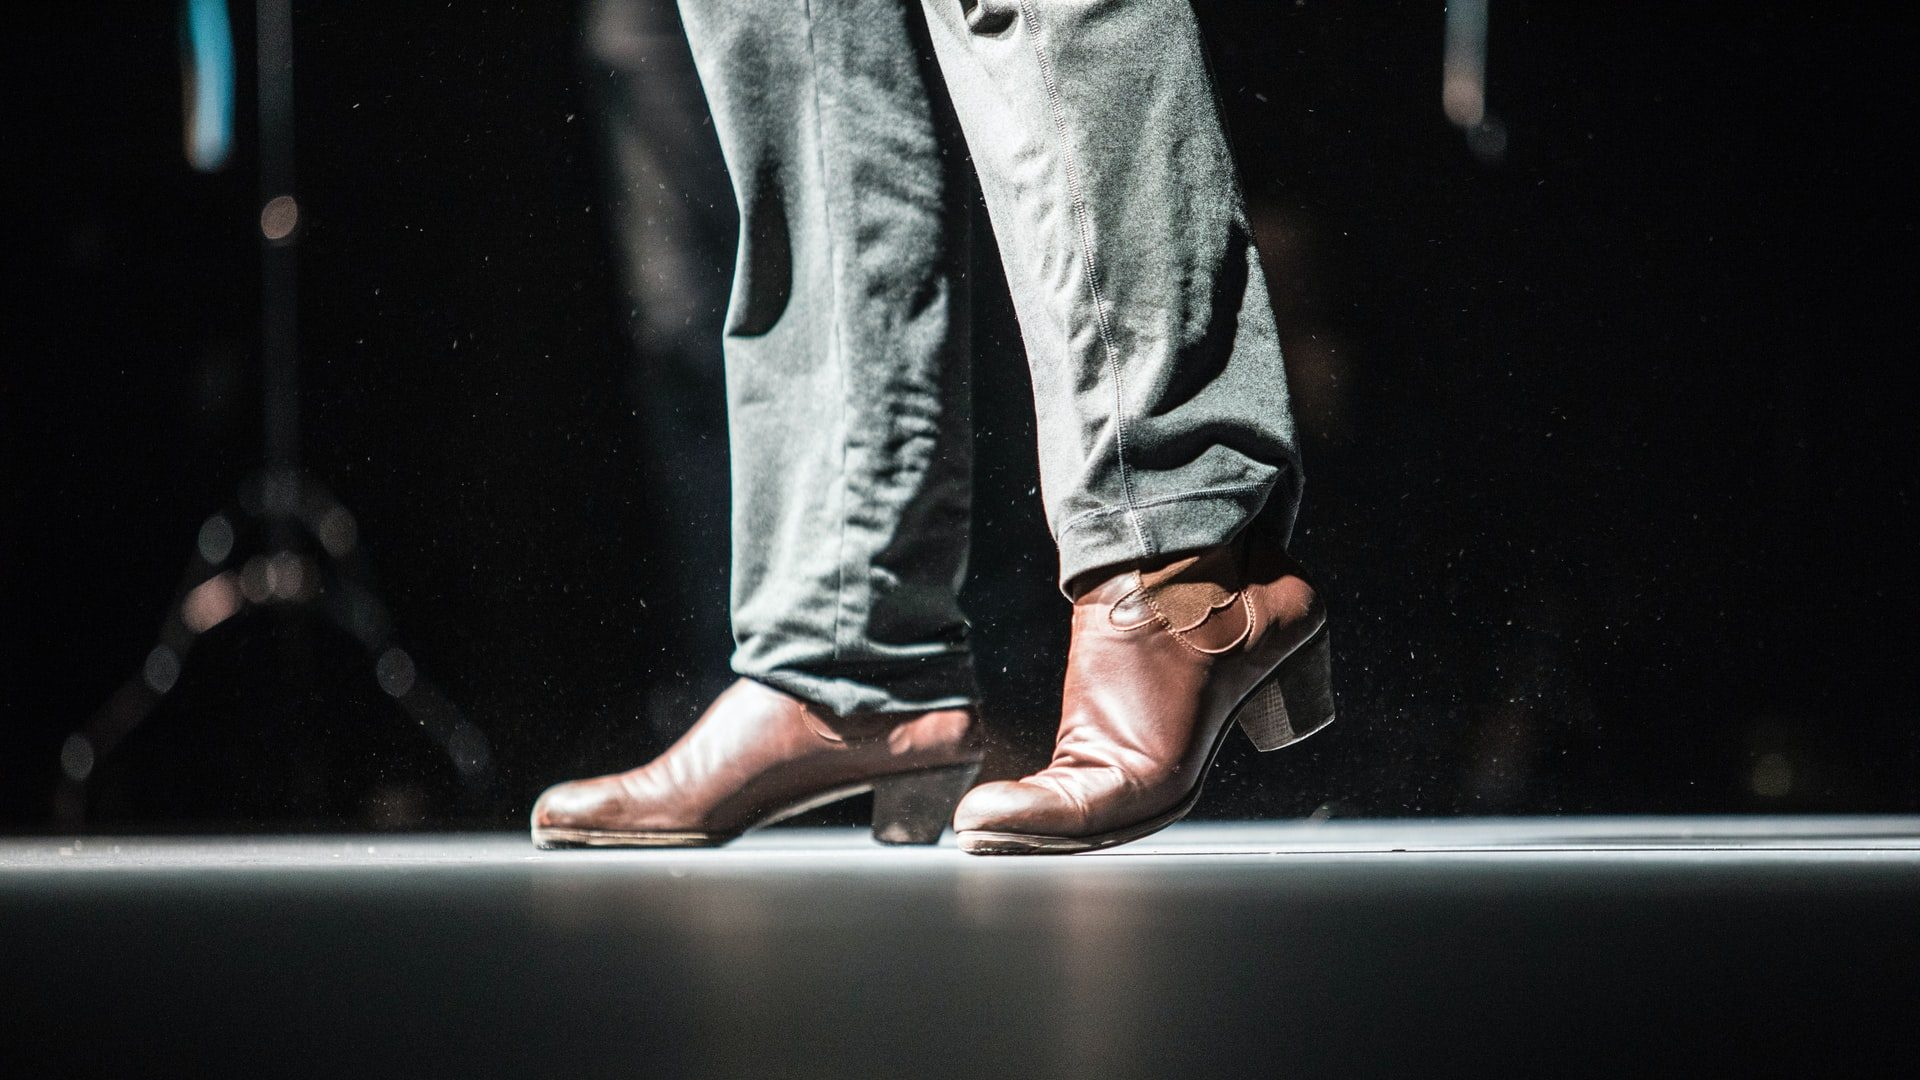 A pair of dark leather boots and jeans are lit by a spotlight indoors